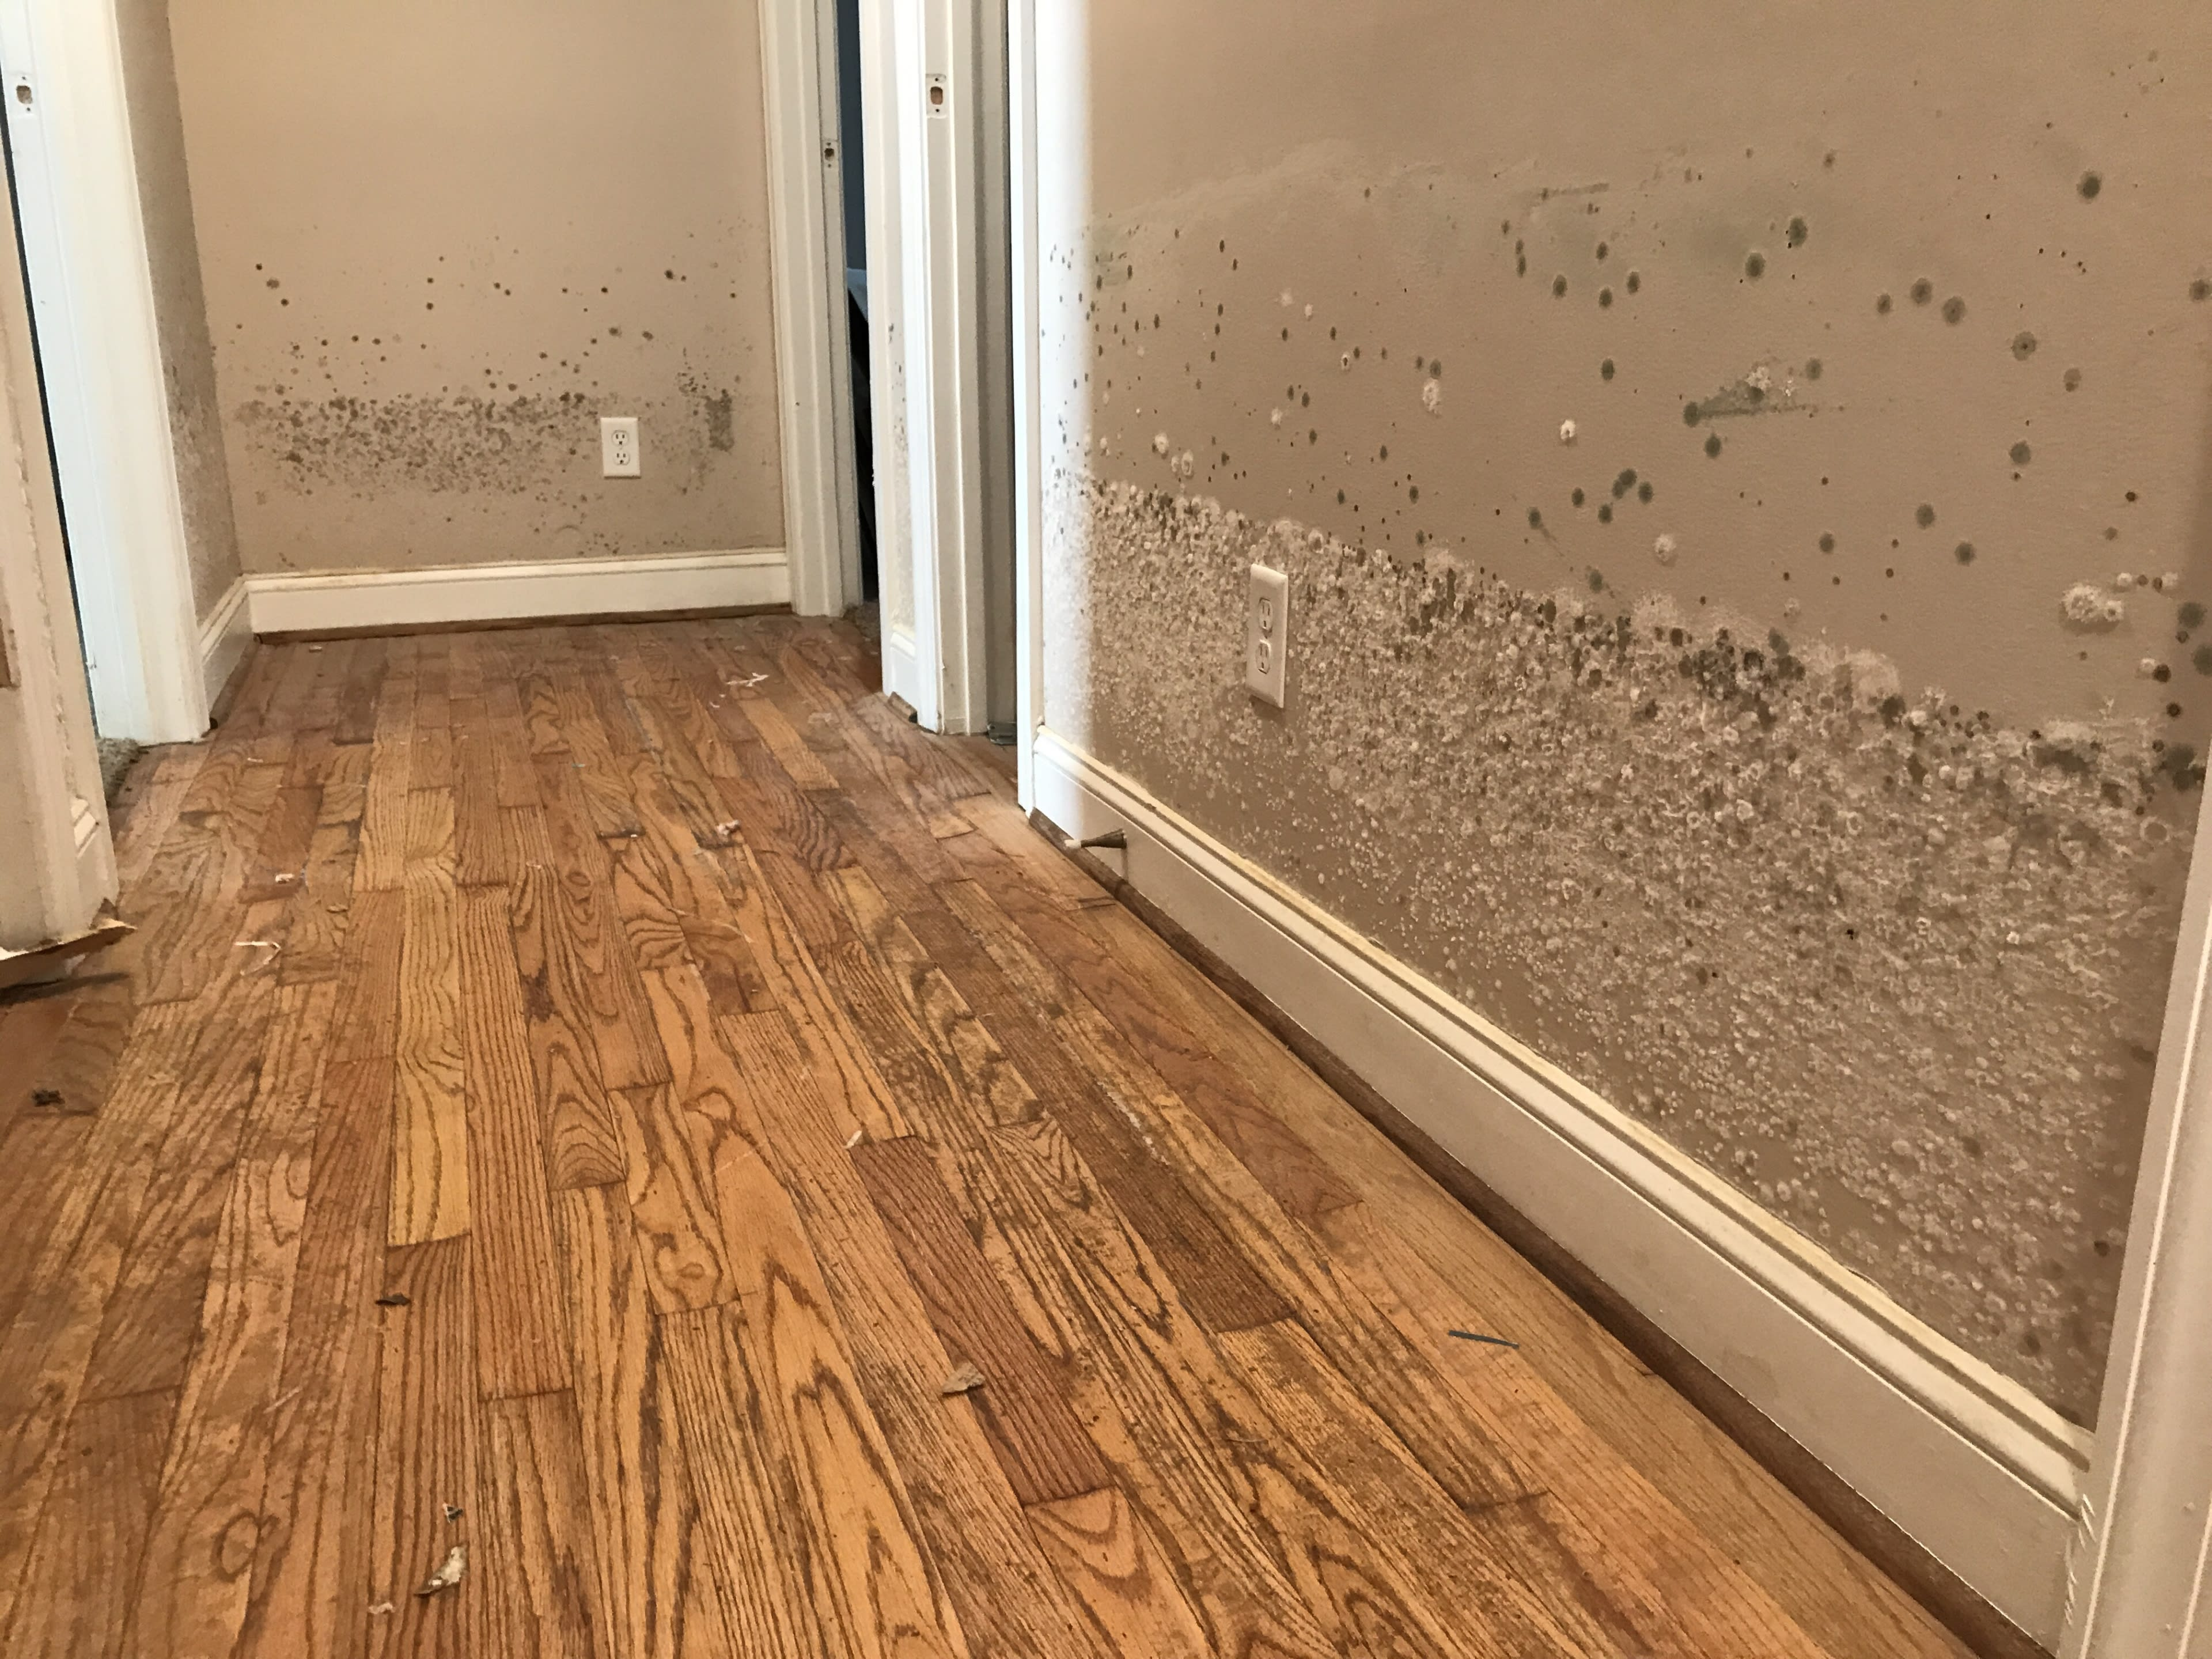 interior-of-a-flood-damaged-home-in-a-residential--UWEY9CB